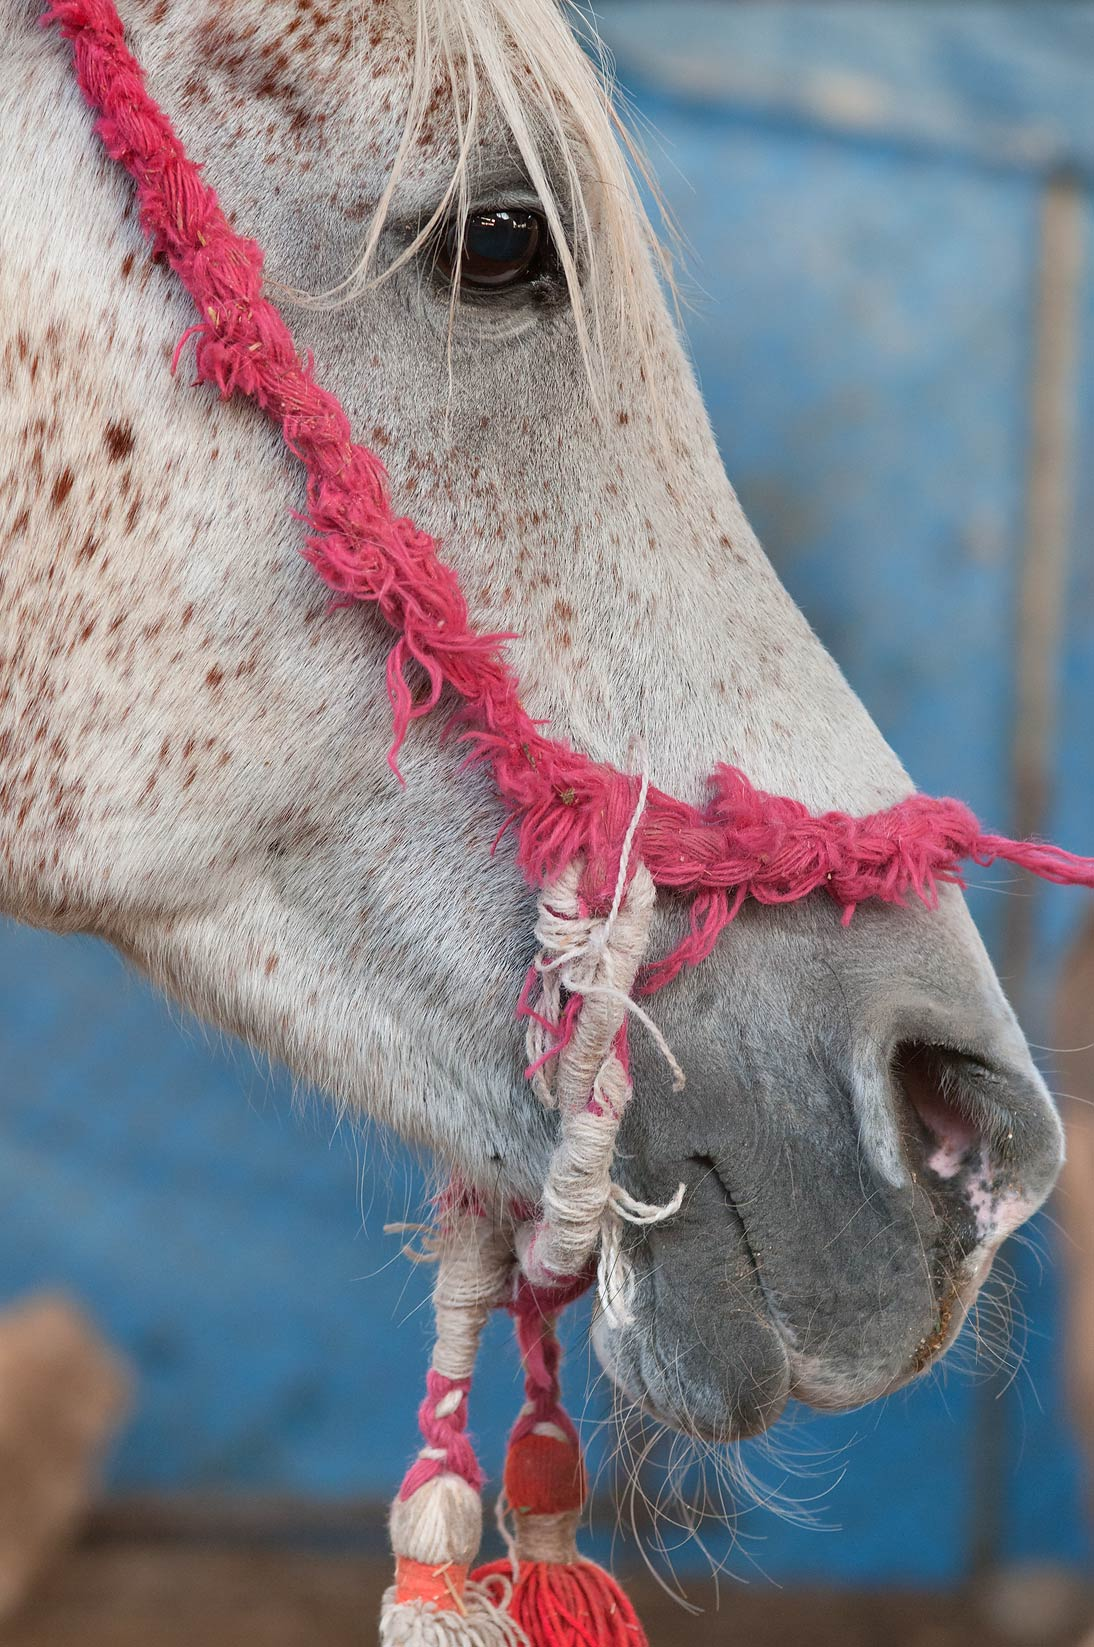 Horse in a pen in Animal Market, Wholesale Markets area. Doha, Qatar